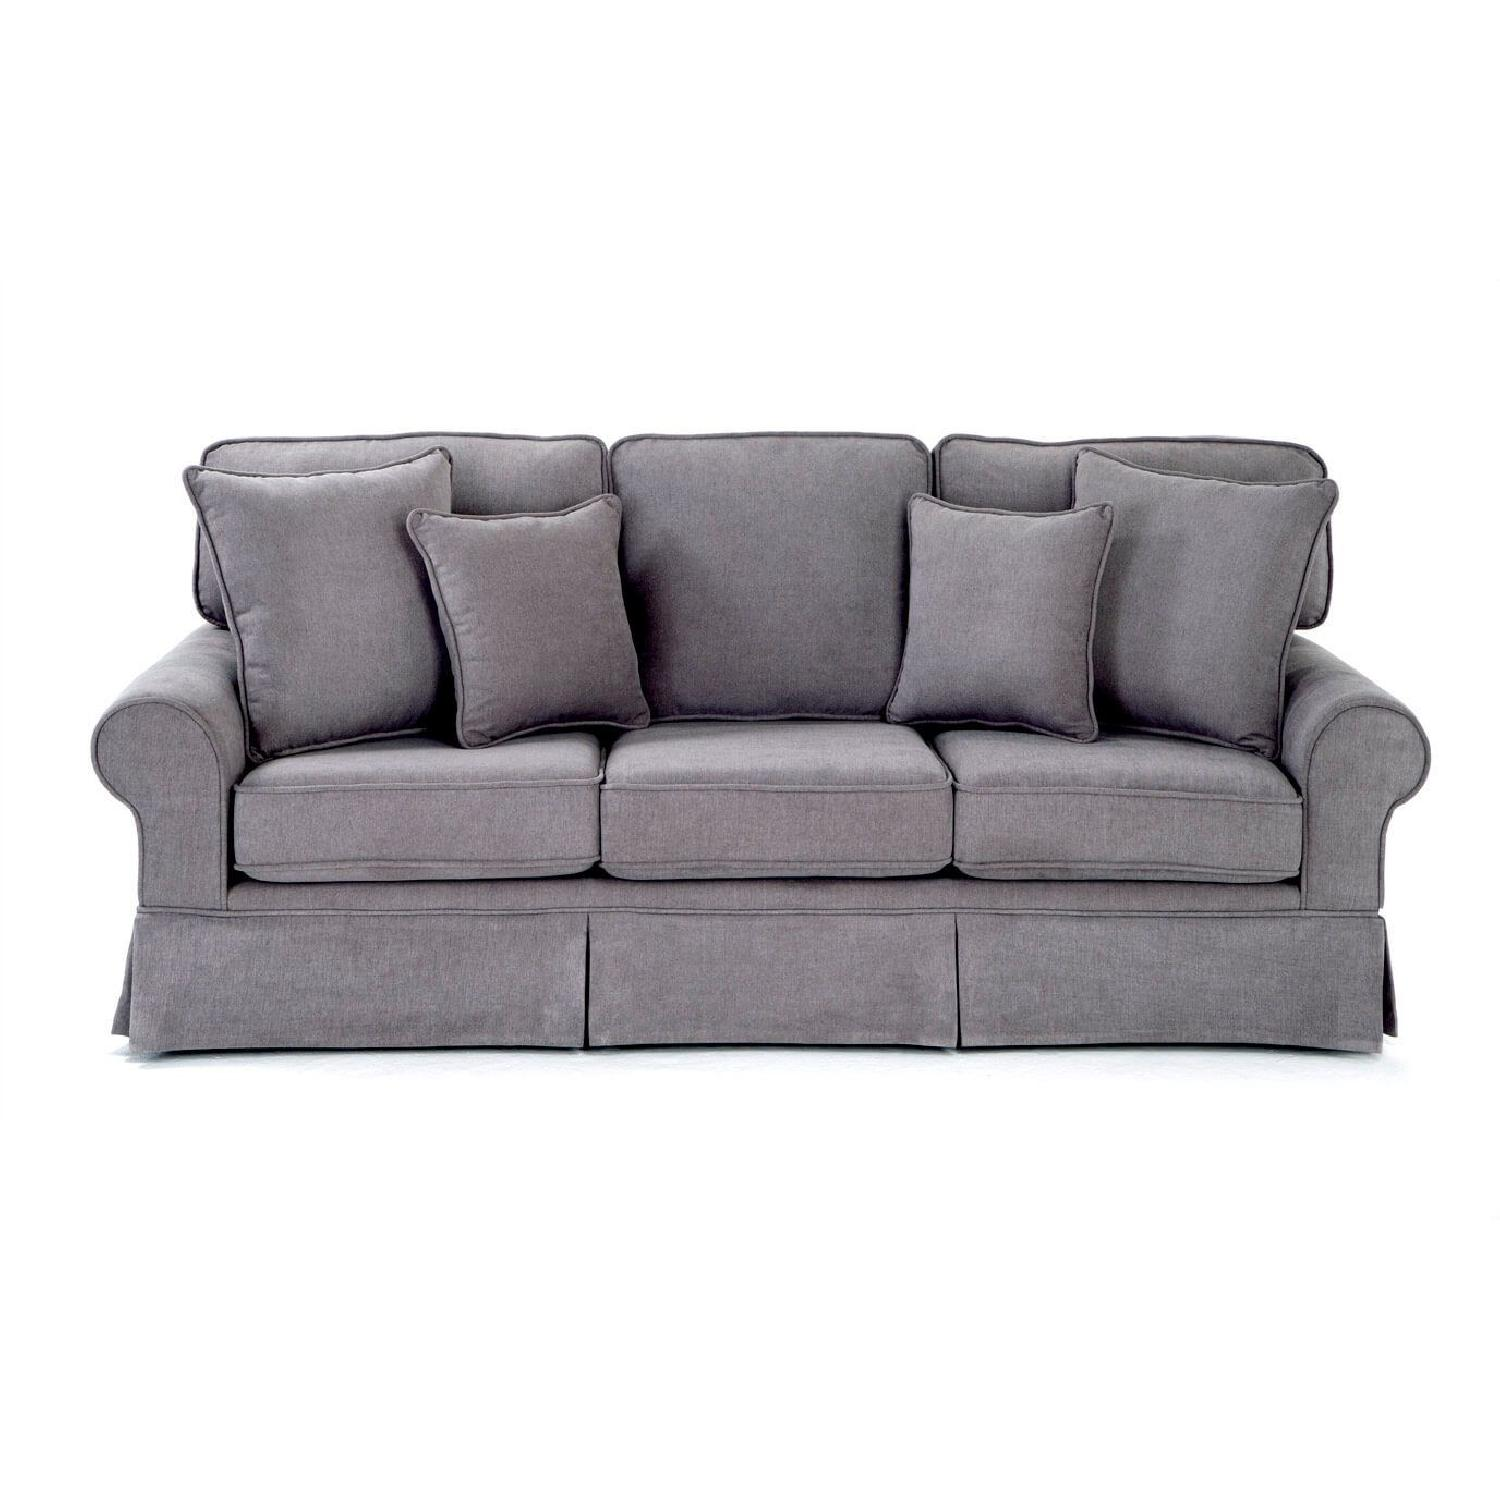 Bob S Dark Gray Fabric Sleeper Sofa Aptdeco